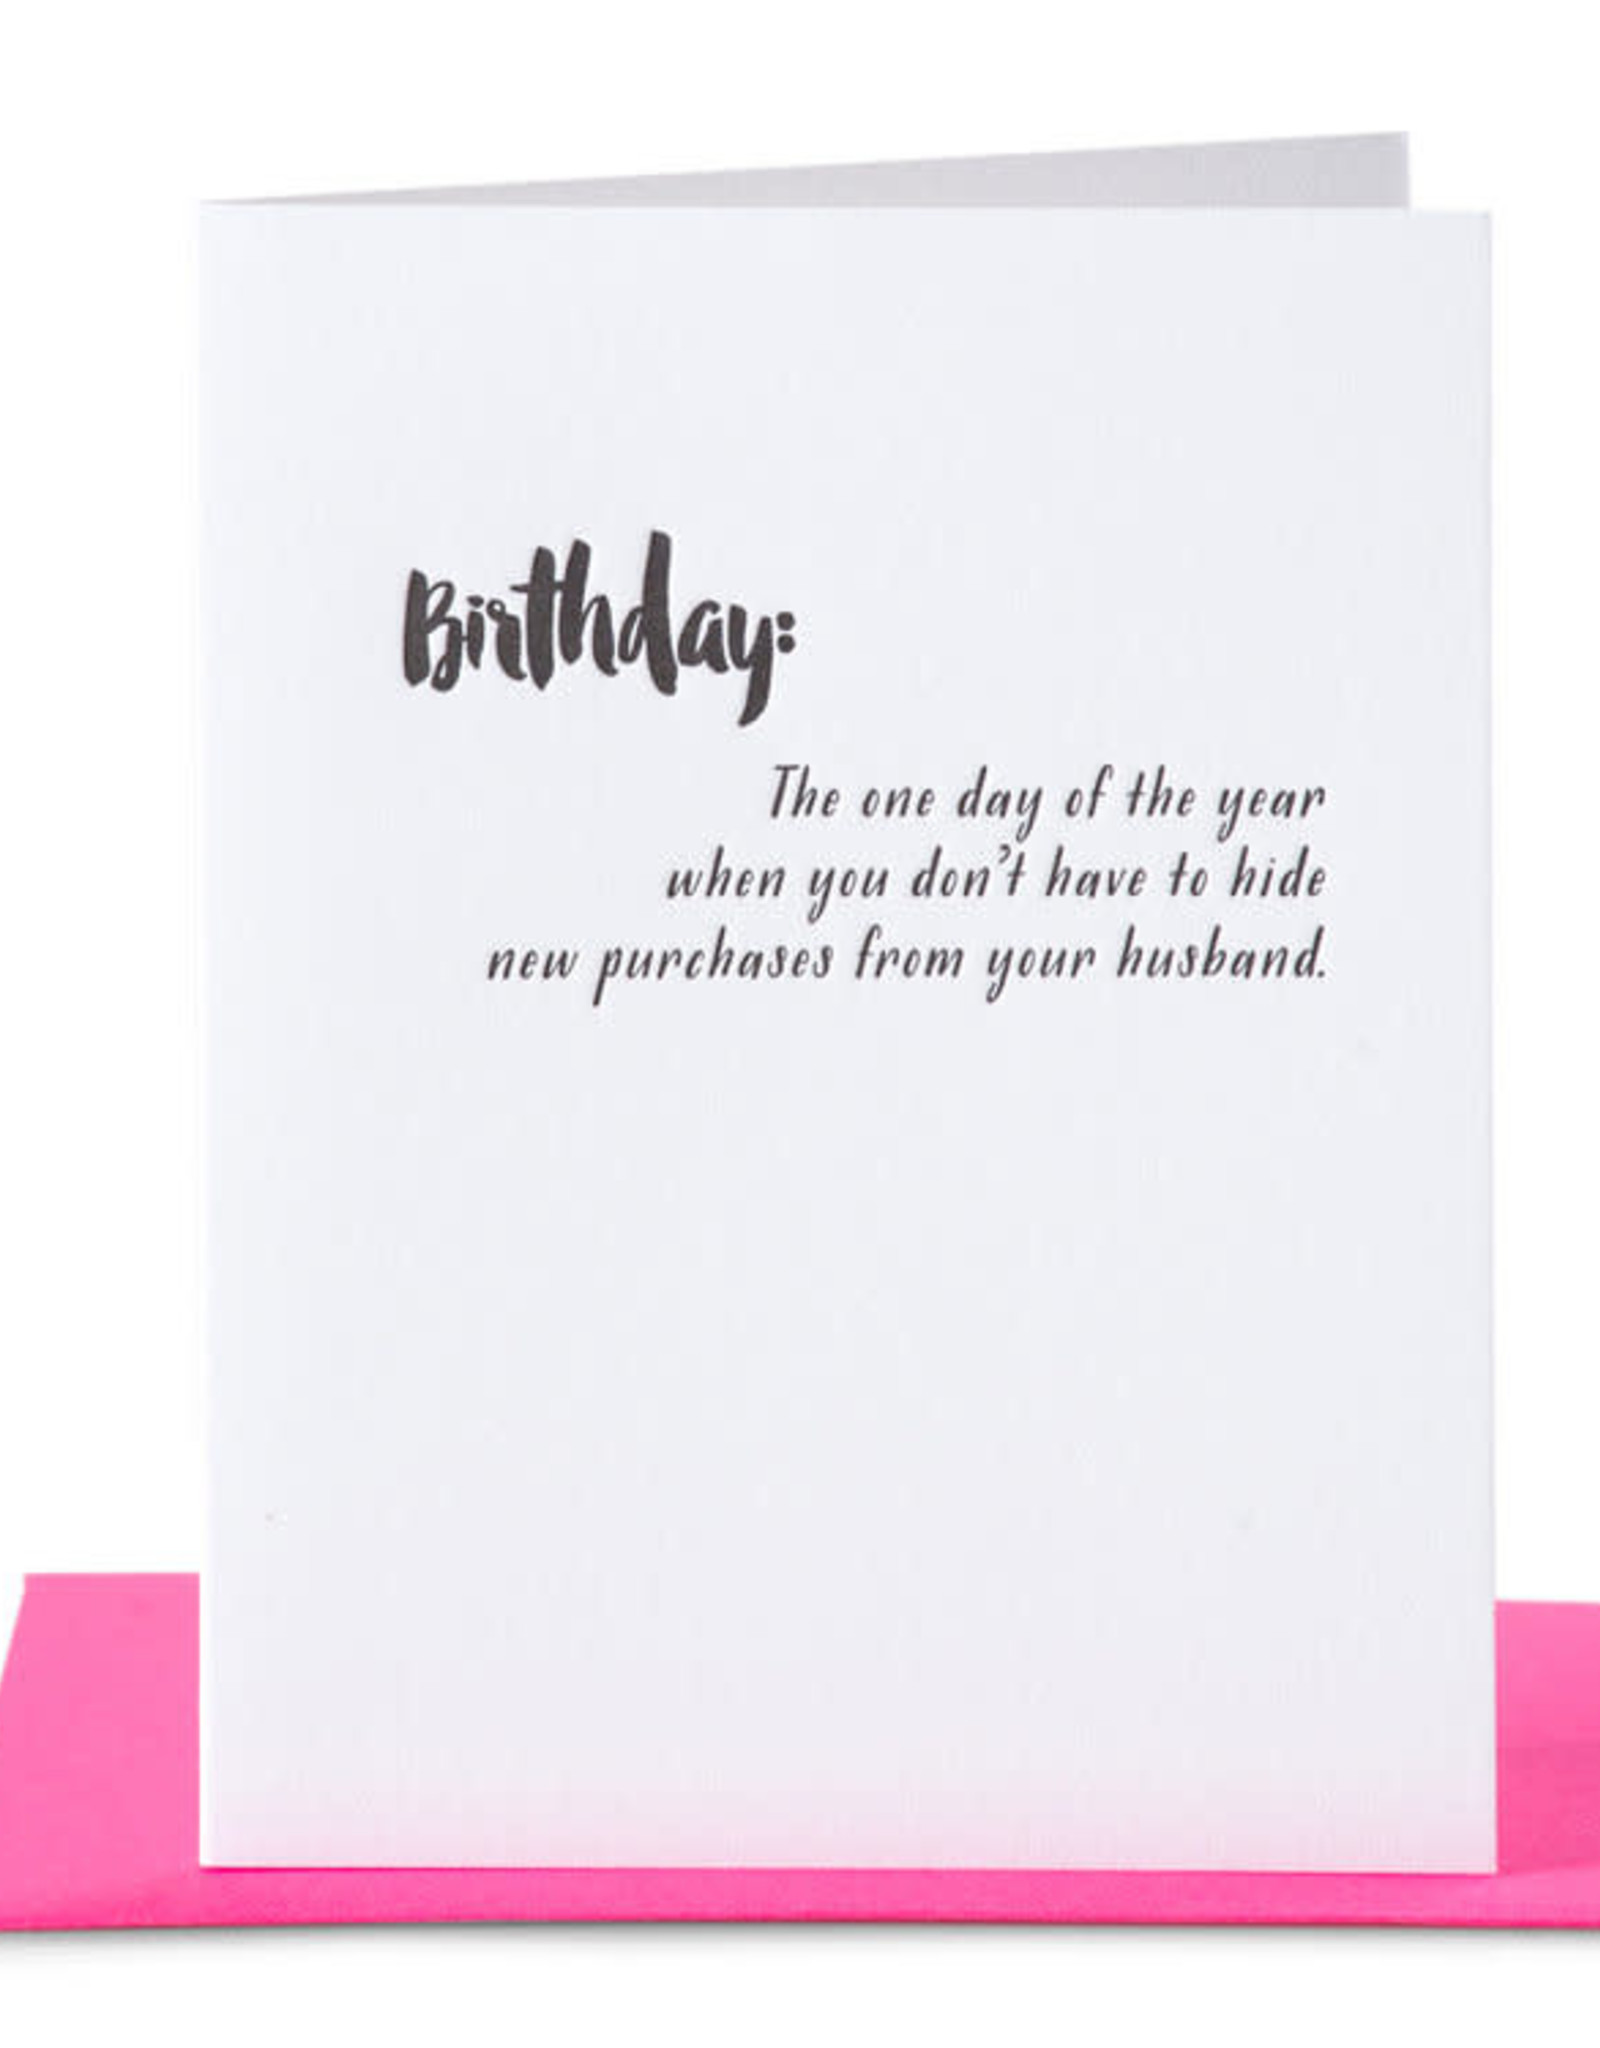 Paper Epiphanies Hide Purchases Card